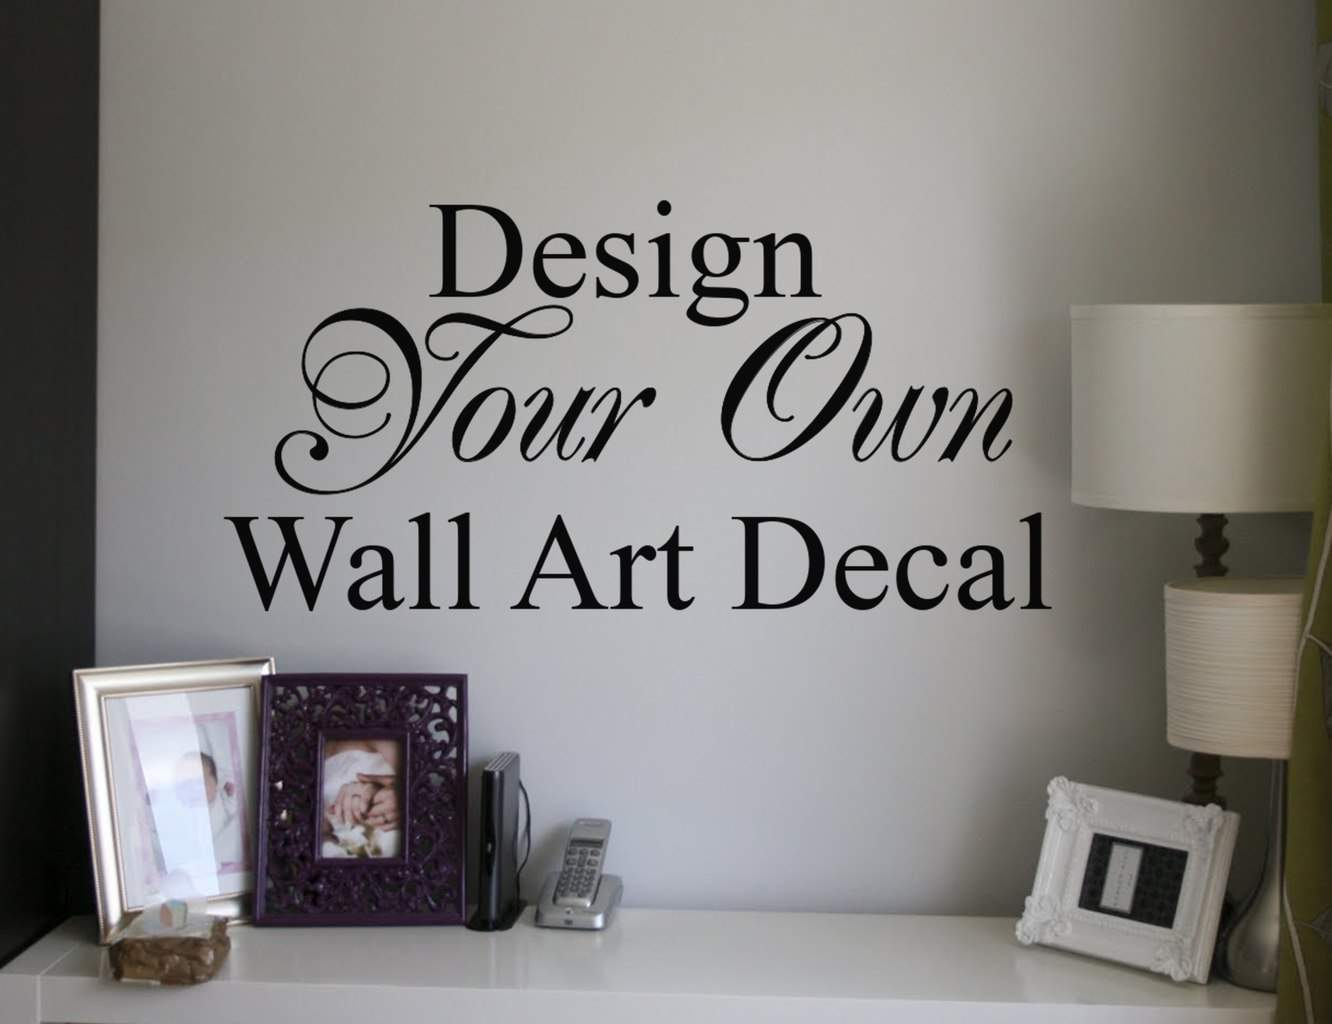 Design tool | Design your own decal